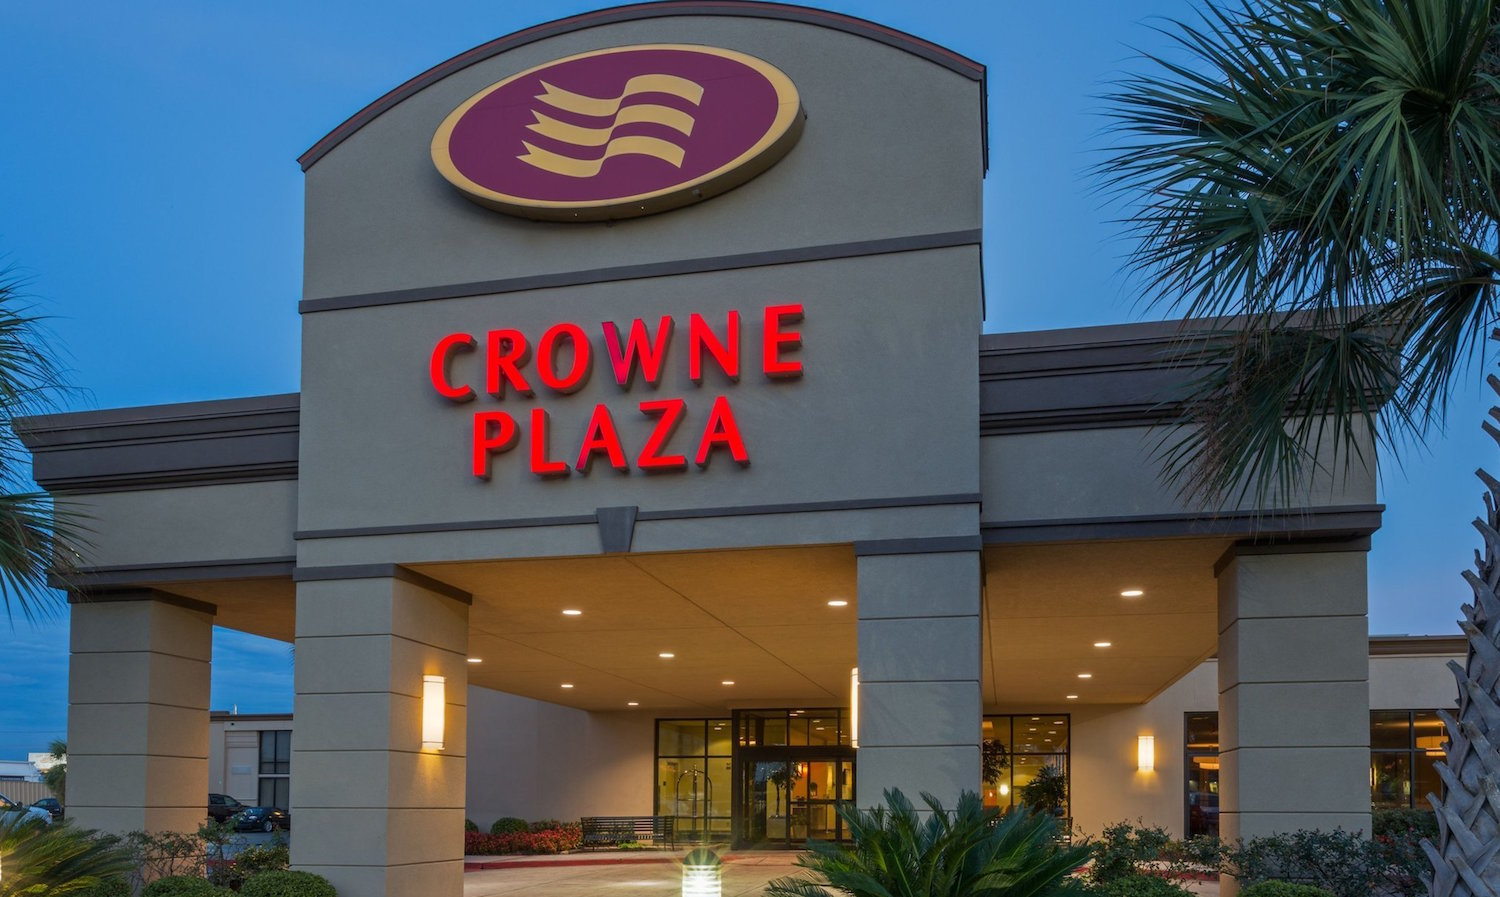 Crowne Plaza New Orleans Airport - Kenner, LA.